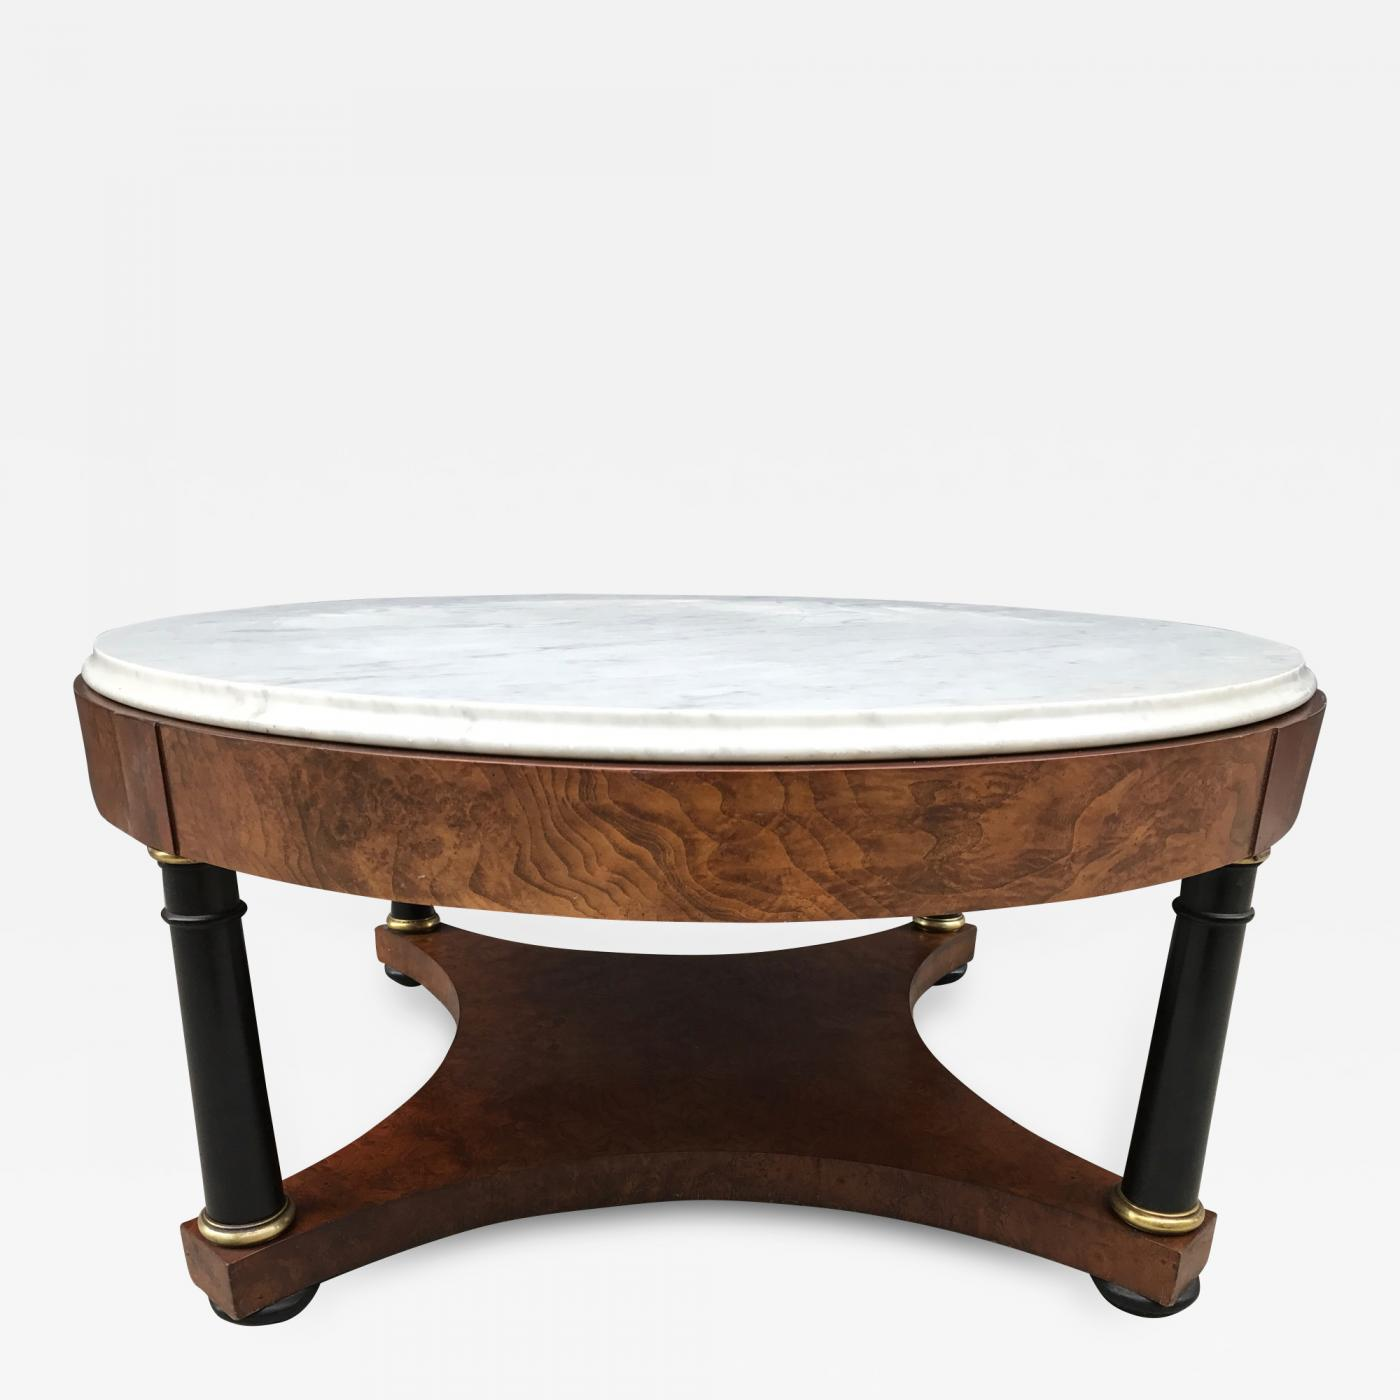 Marble Top Coffee Table By Baker With Black Lacquered Columns